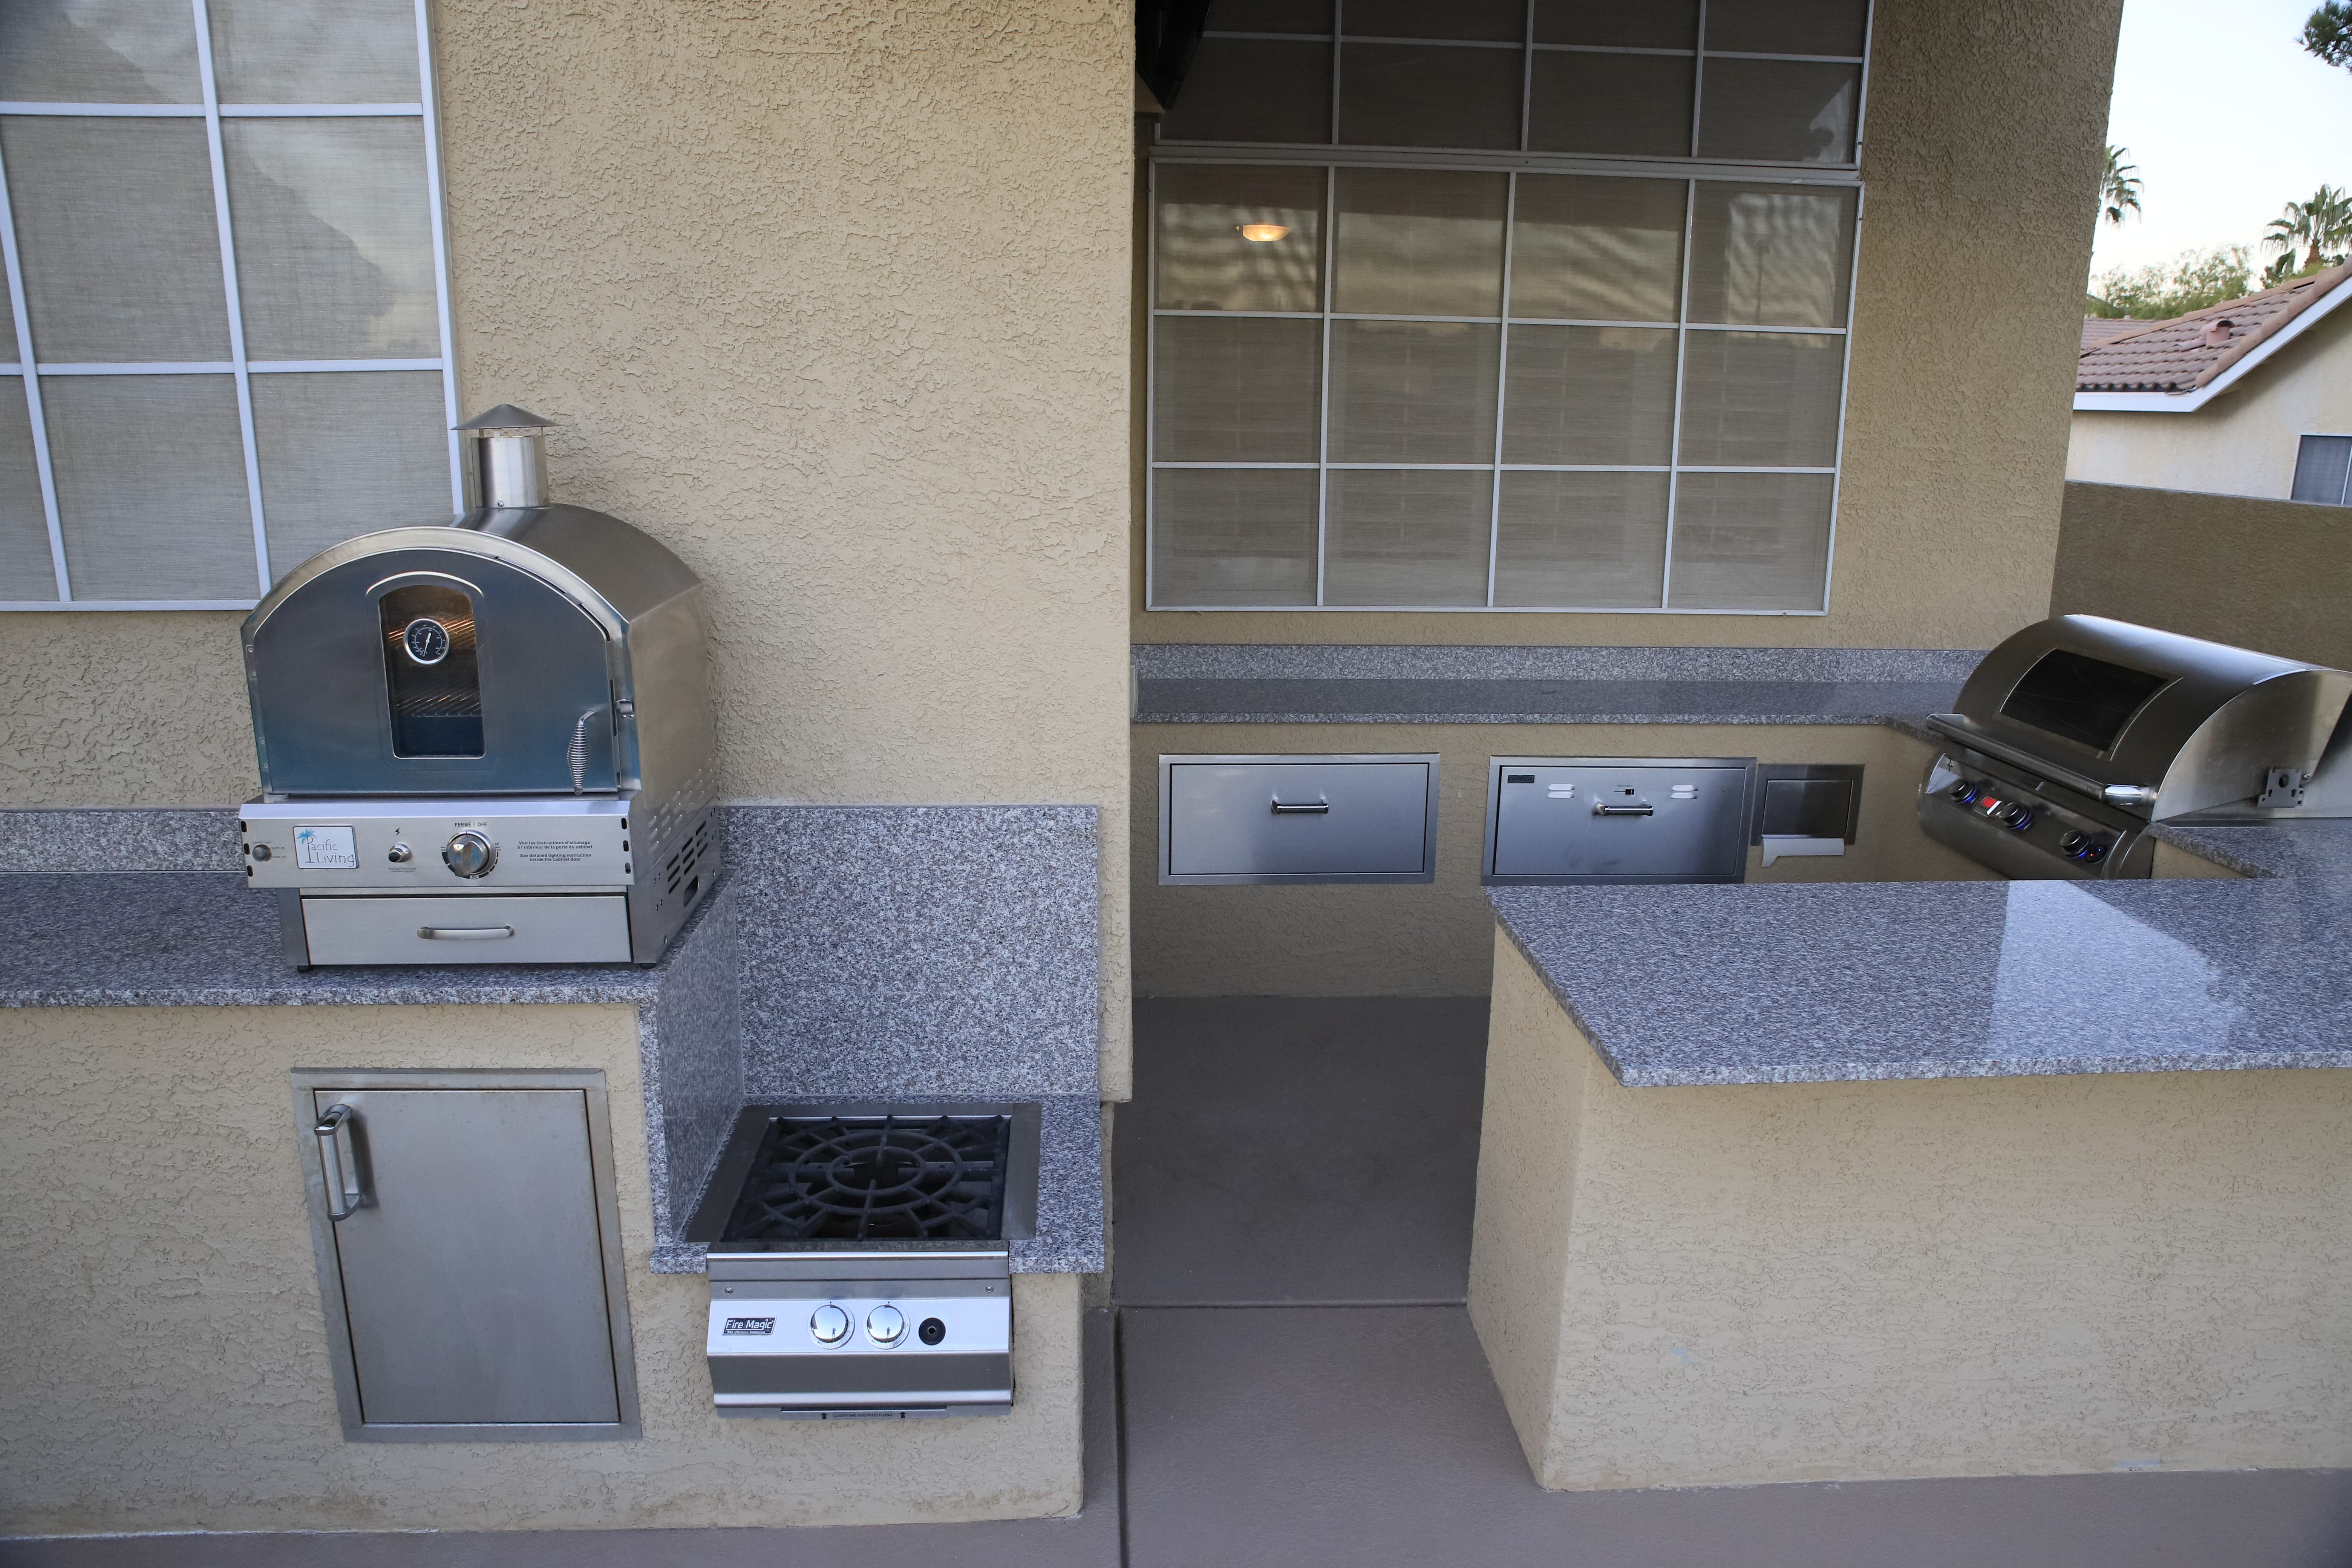 beautiful and simple outdoor kitchen with a stainless steel pizza oven, low burner, BBQ, warmer, and even a covered paper towel holder